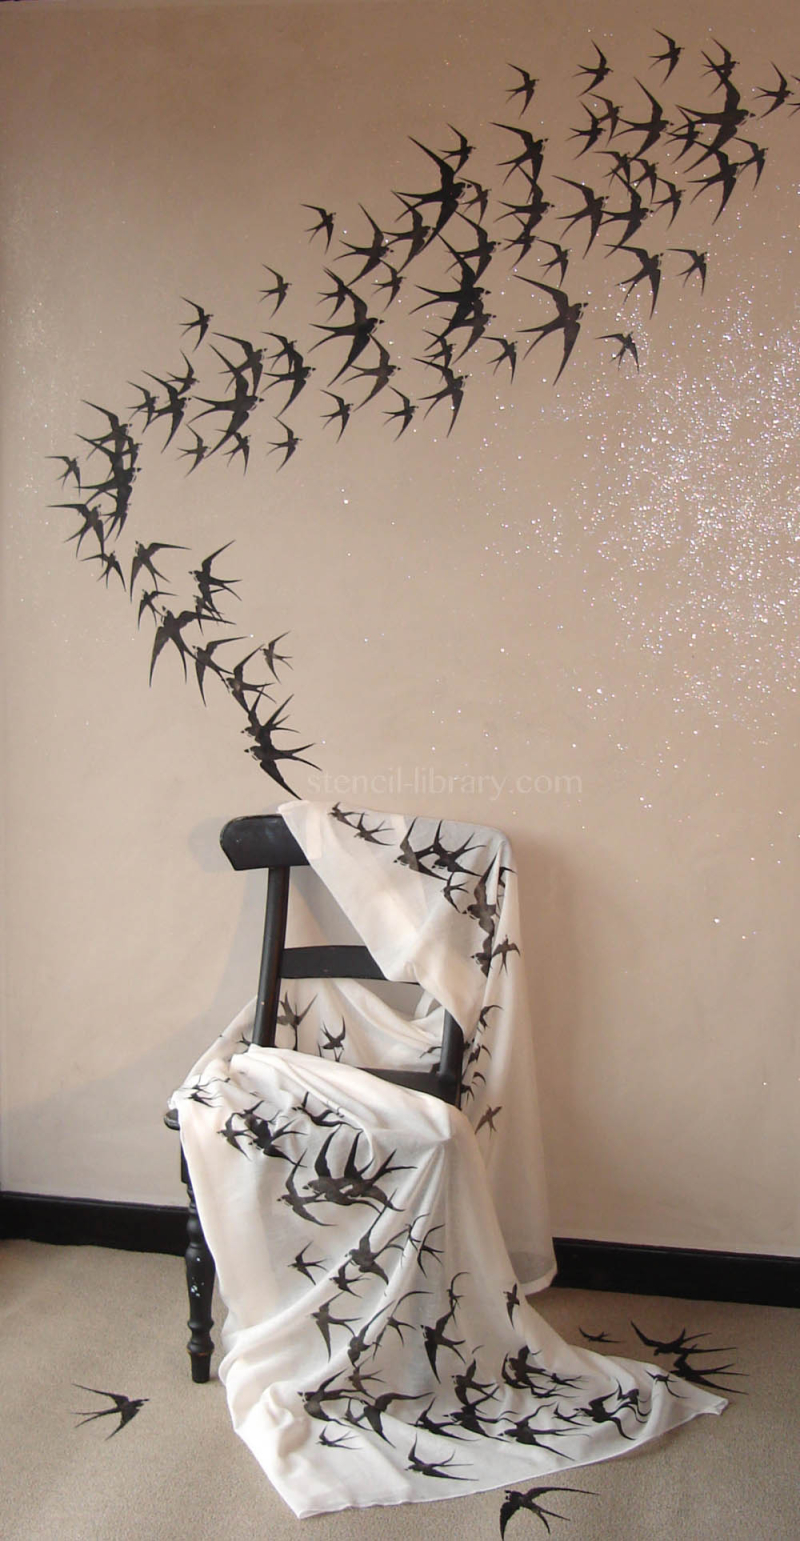 Y-10 3 Swallow stencil-library